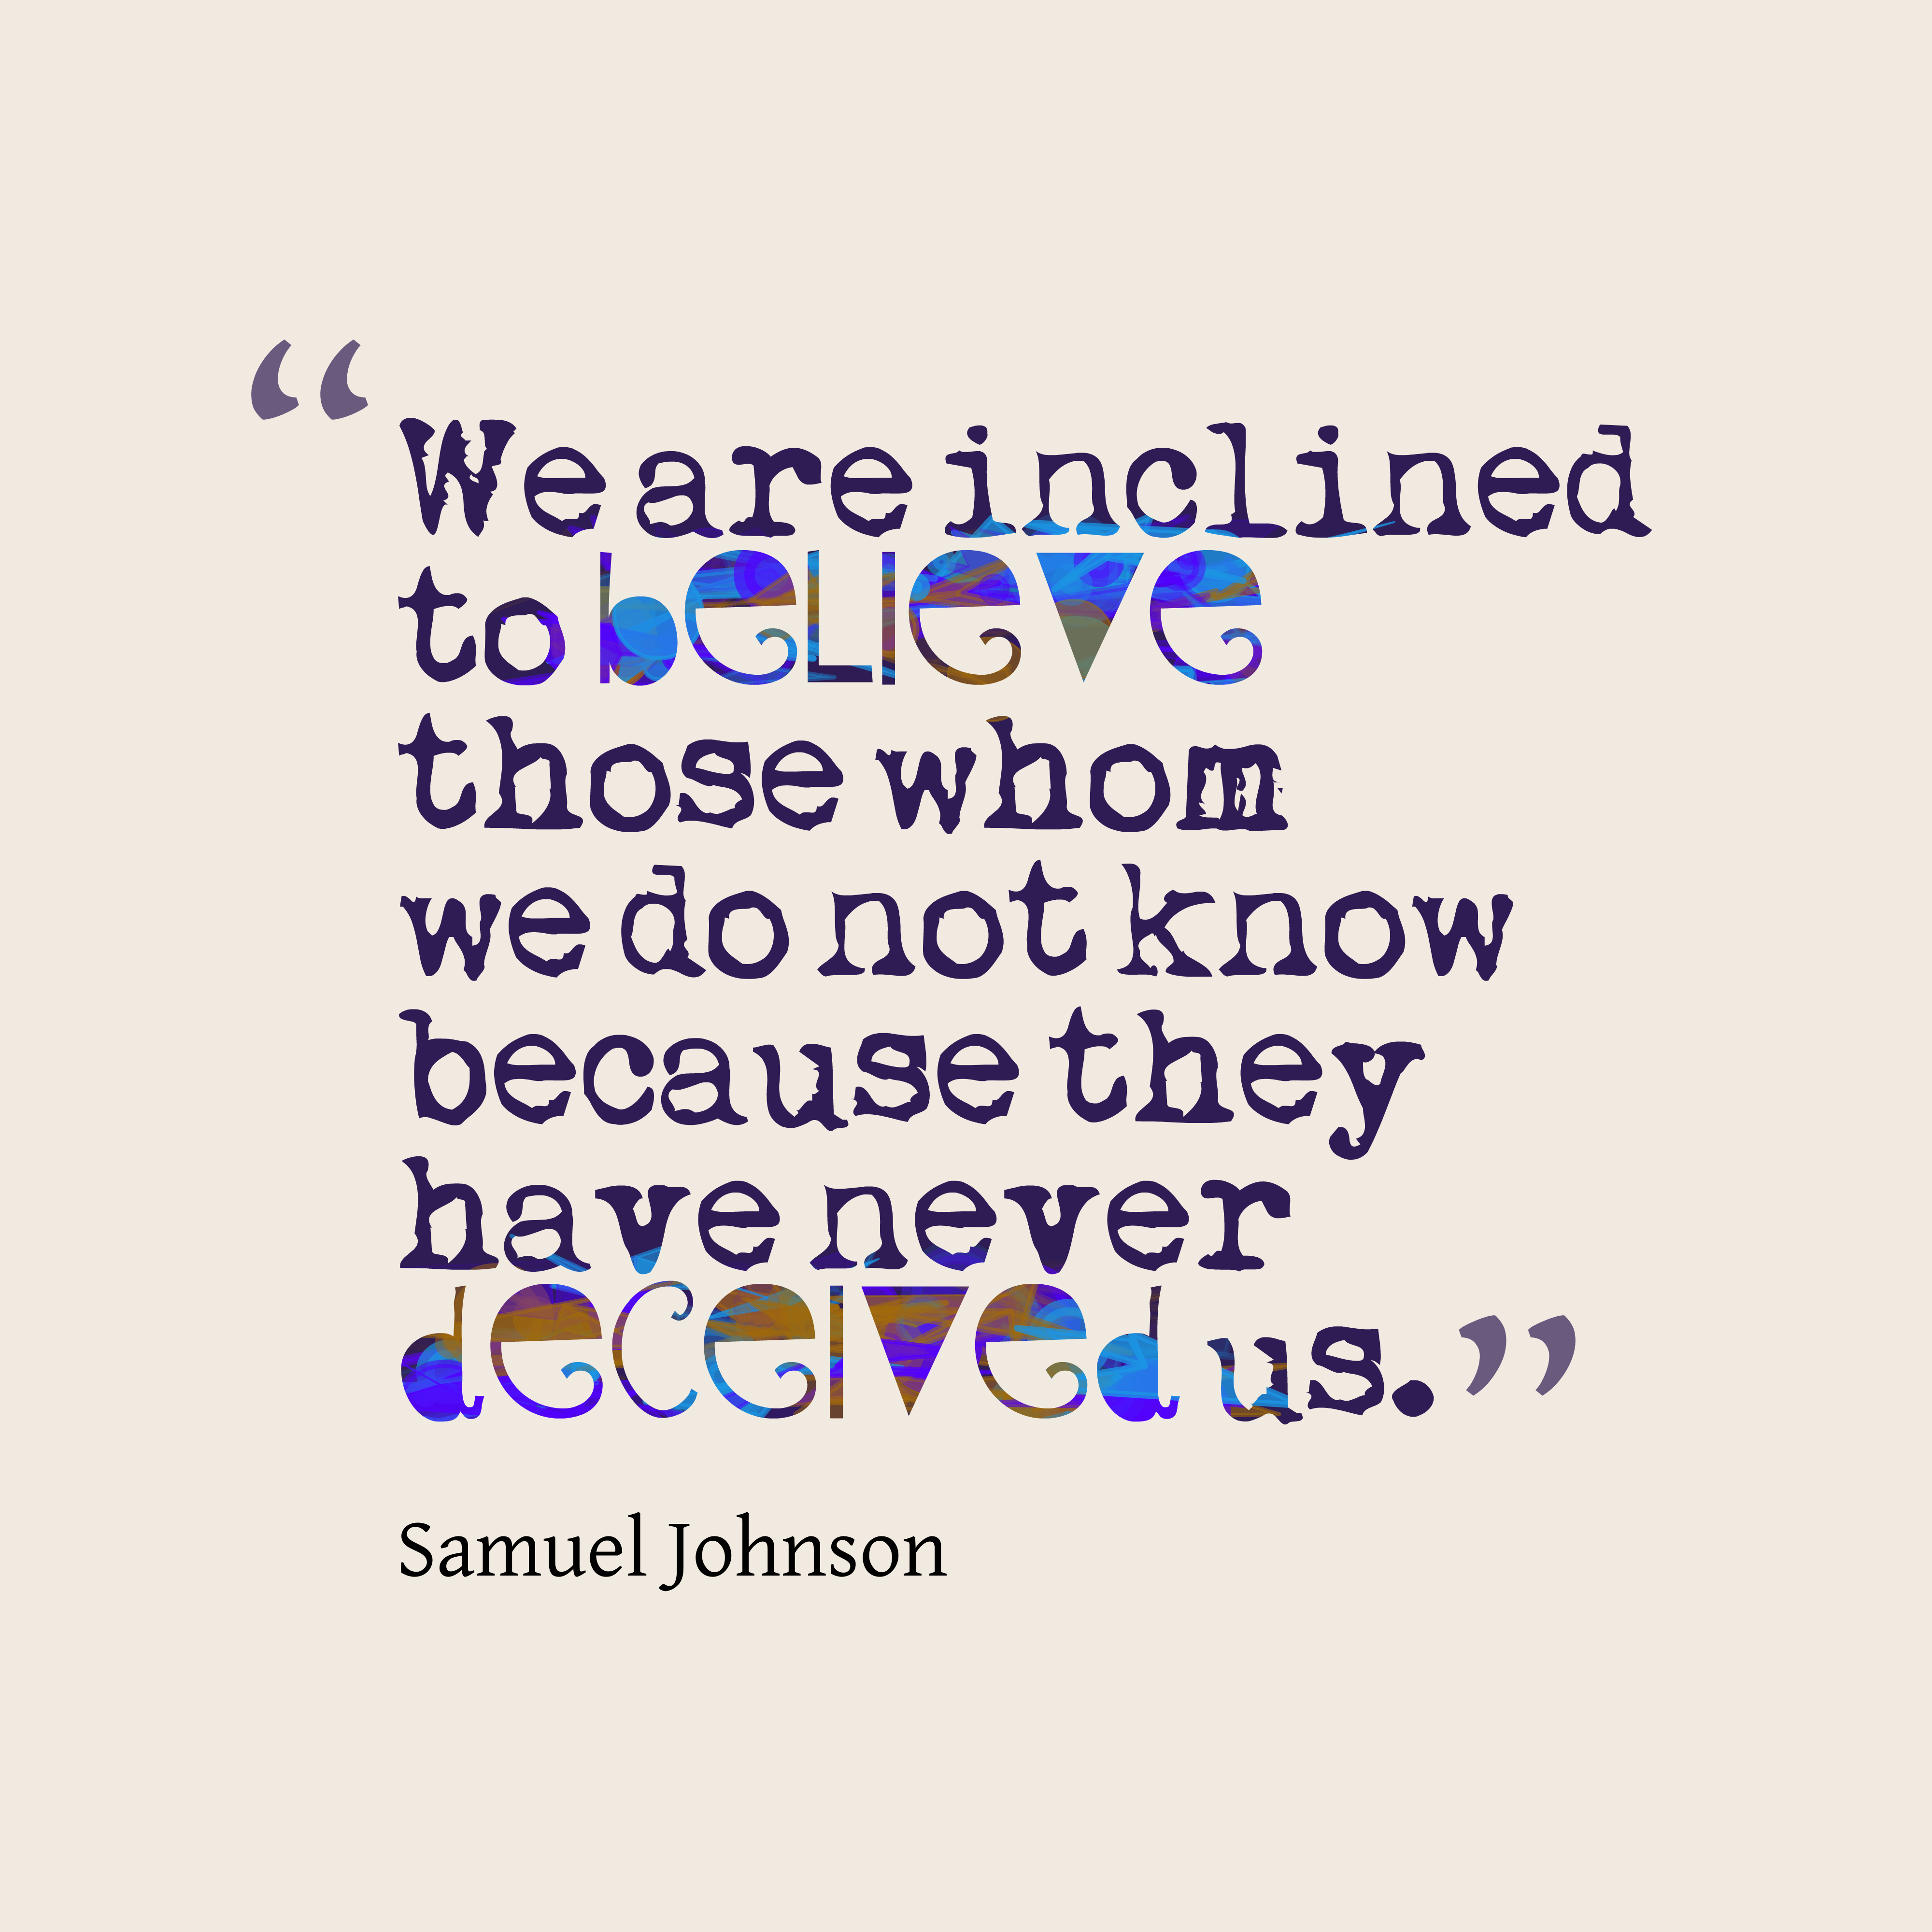 Quotes image of We are inclined to believe those whom we do not know because they have never deceived us.